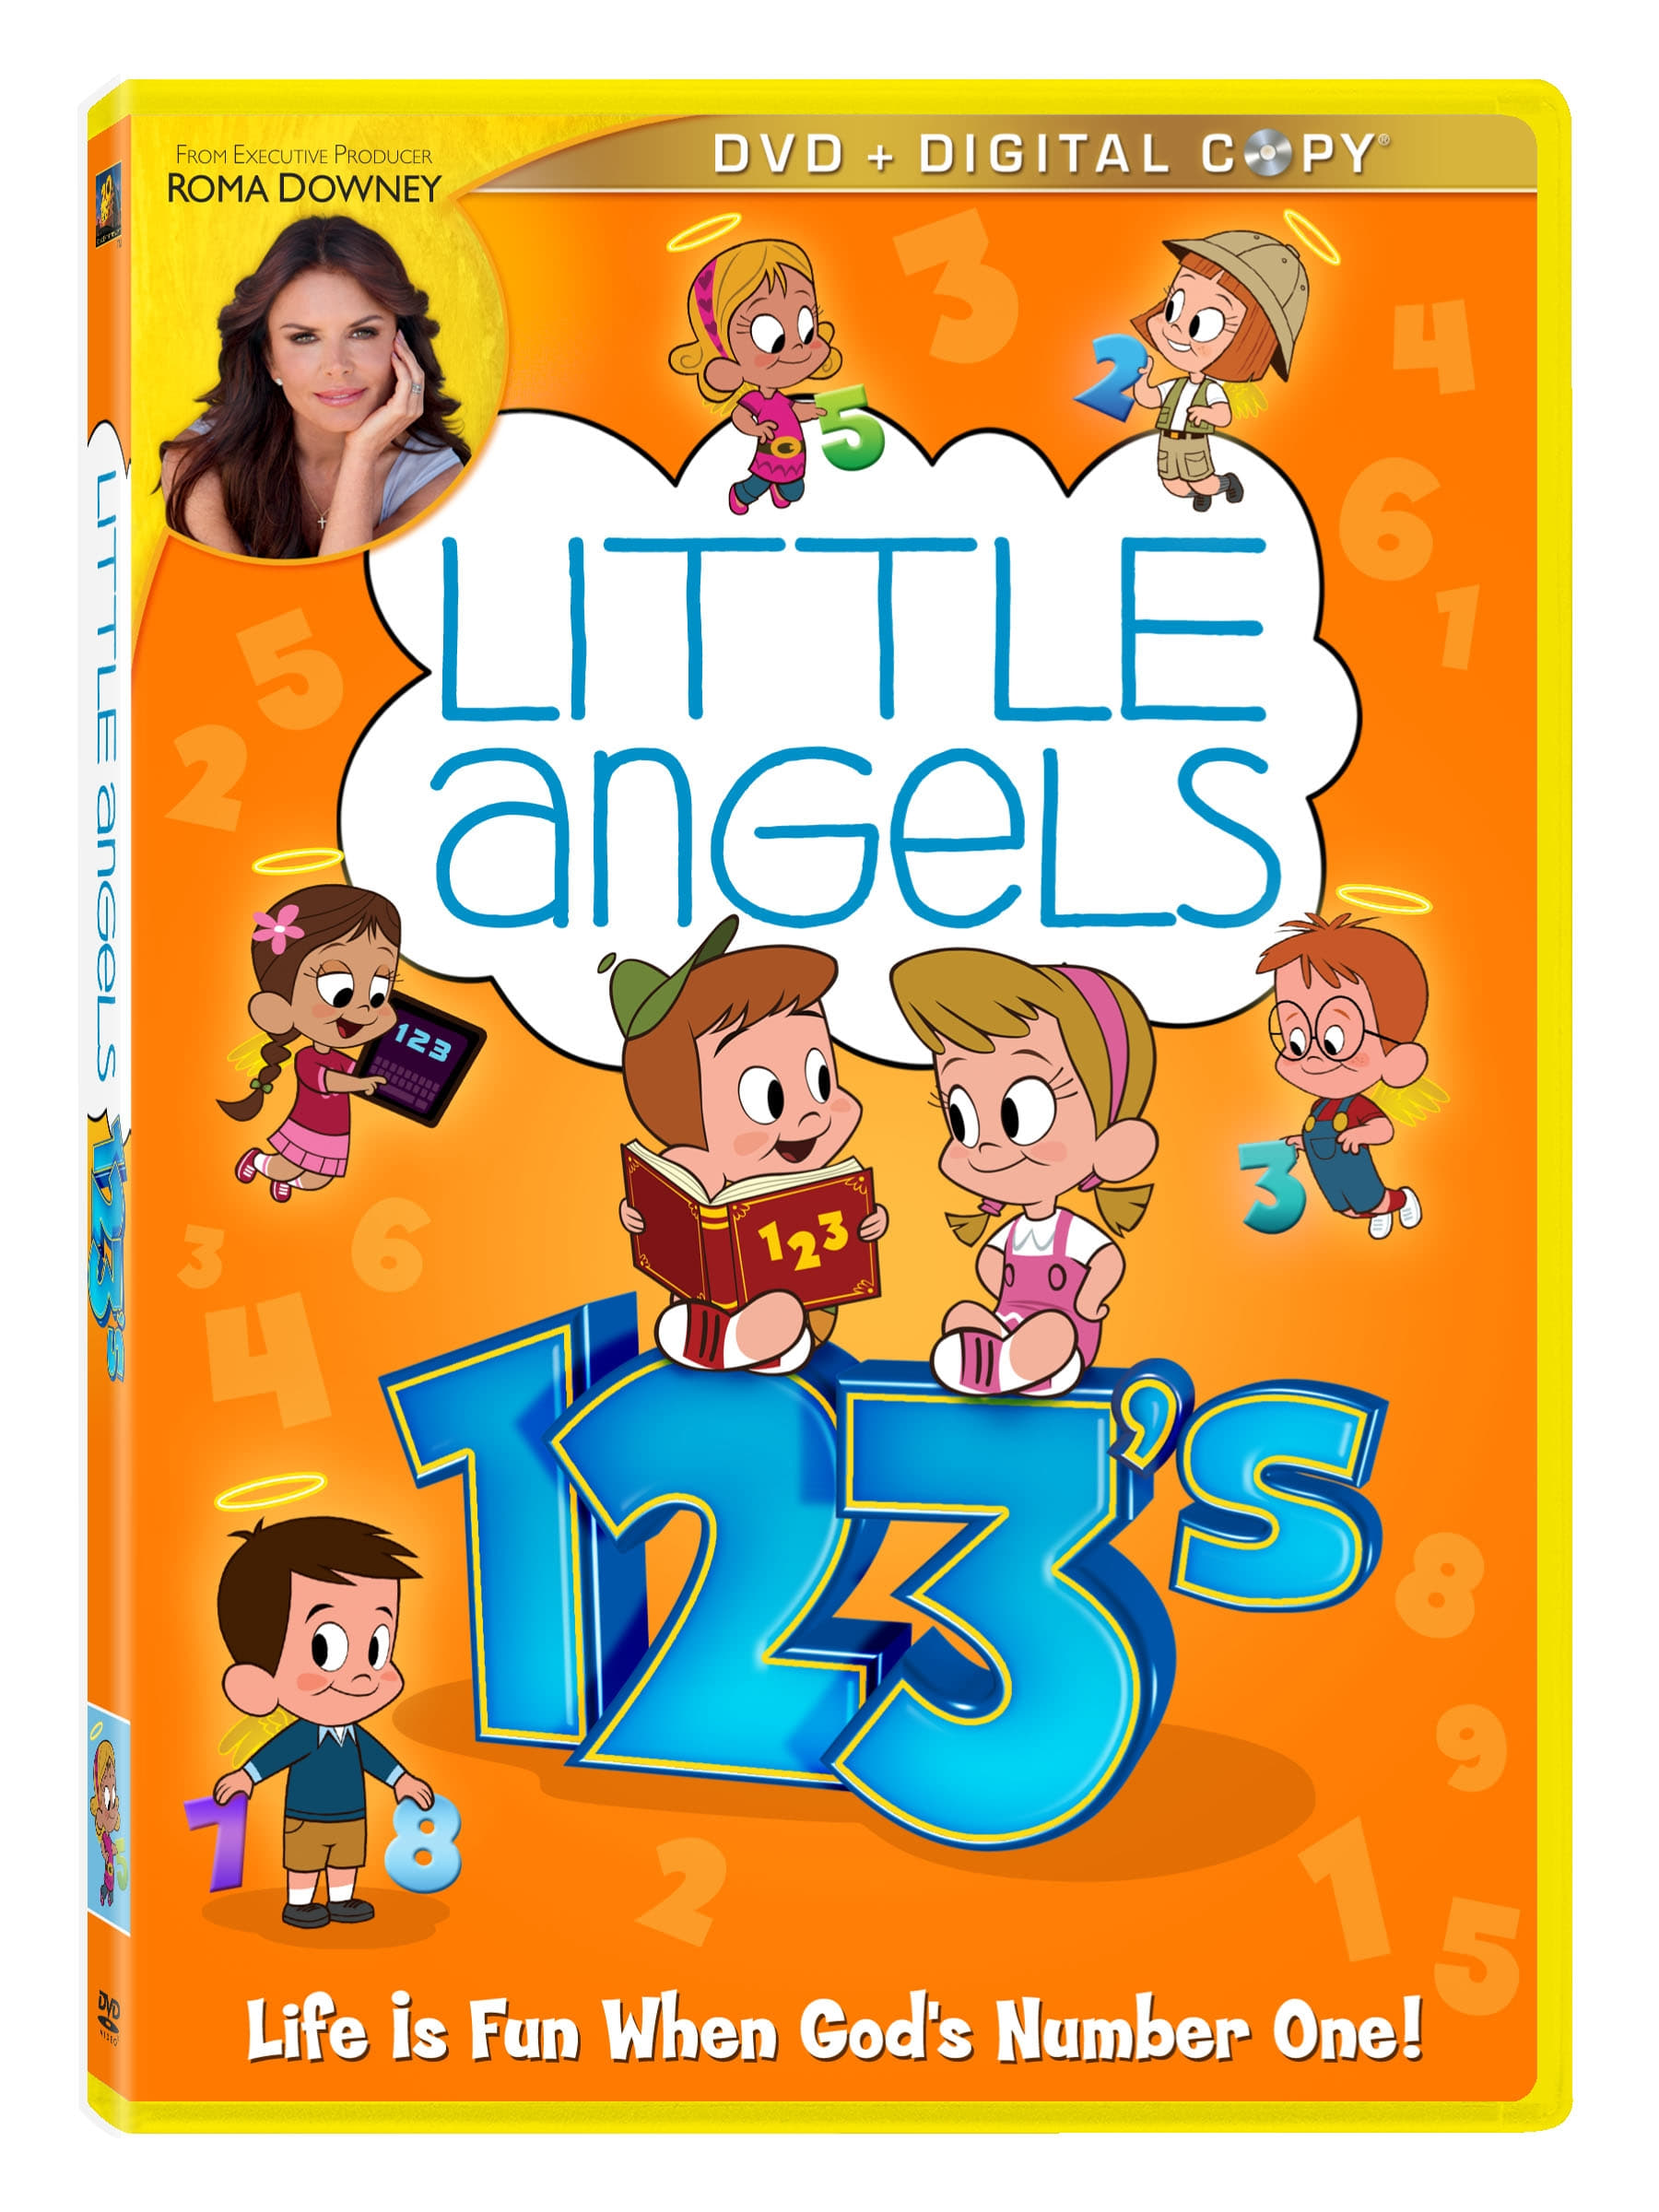 Little Angels Vol. 3: 123's on FREECABLE TV